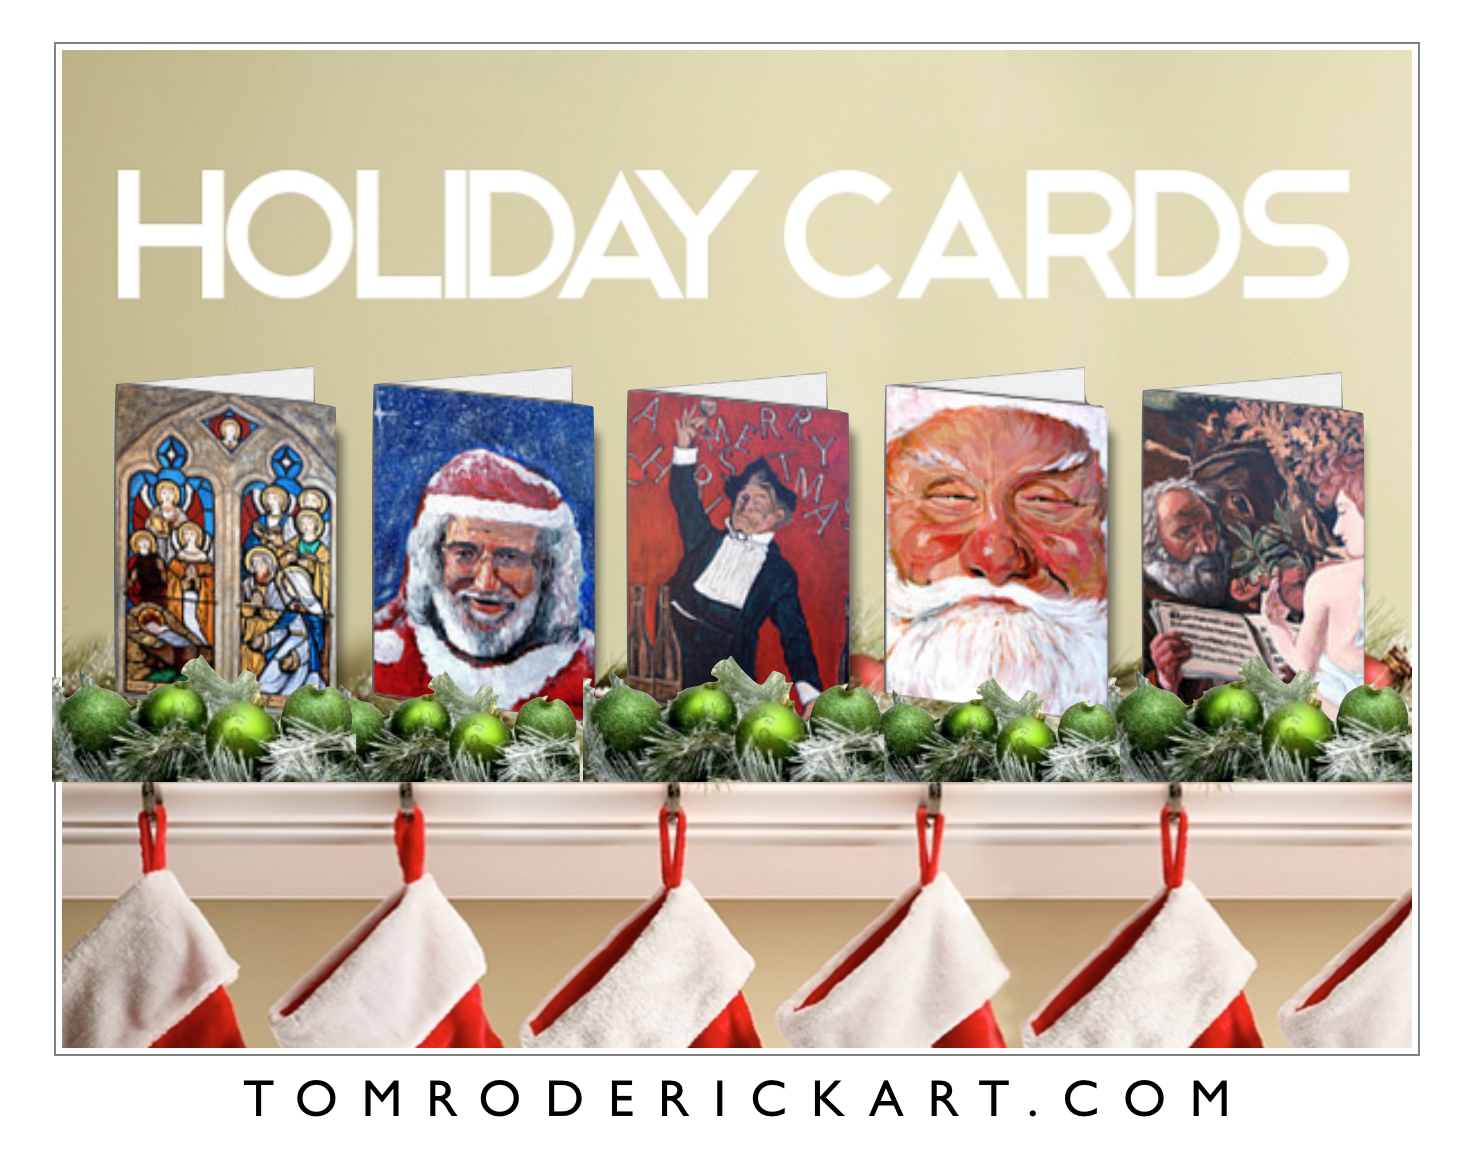 Holiday Cards by Tom Roderick